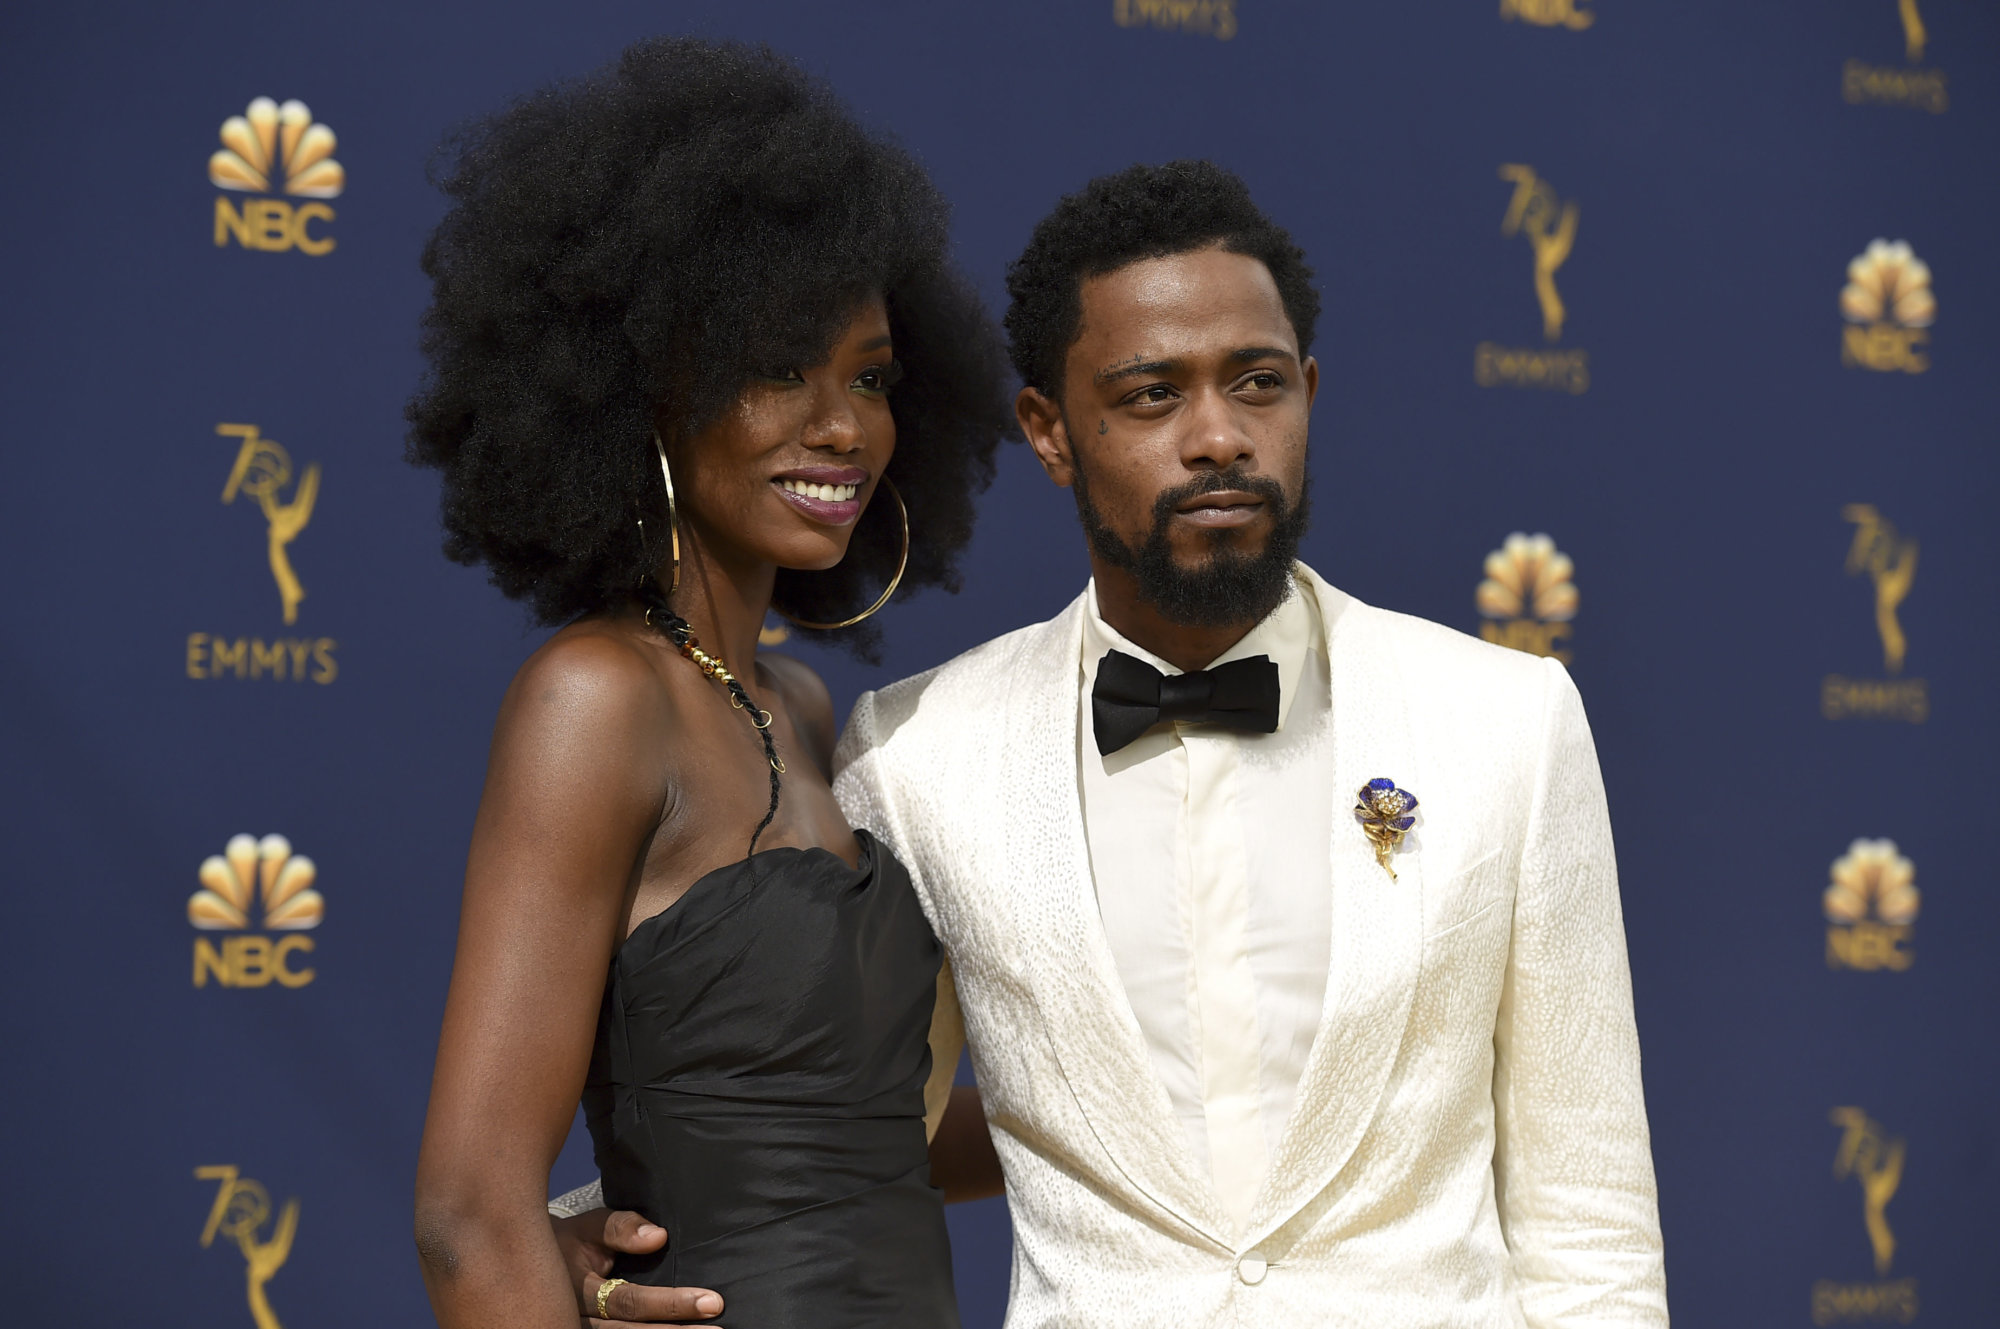 Xosha Roquemore, left, and Lakeith Stanfield arrive at the 70th Primetime Emmy Awards on Monday, Sept. 17, 2018, at the Microsoft Theater in Los Angeles. (Photo by Jordan Strauss/Invision/AP)